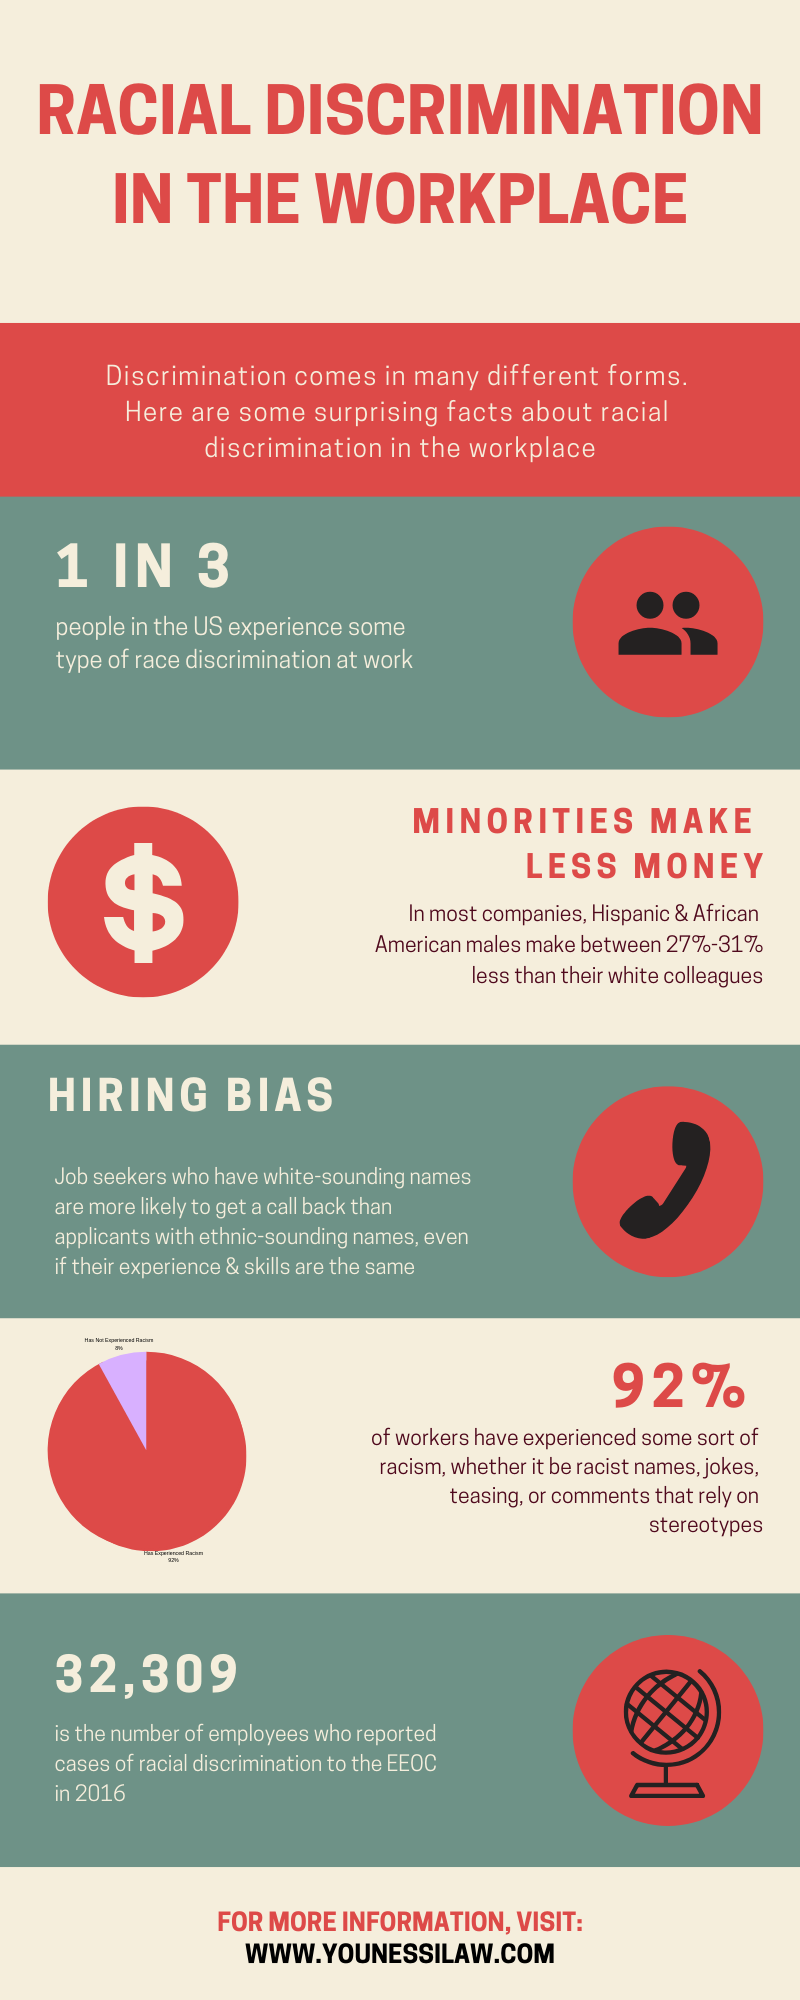 Statistics on Racial Discrimination show the various types of challenges minorities face in the workplace